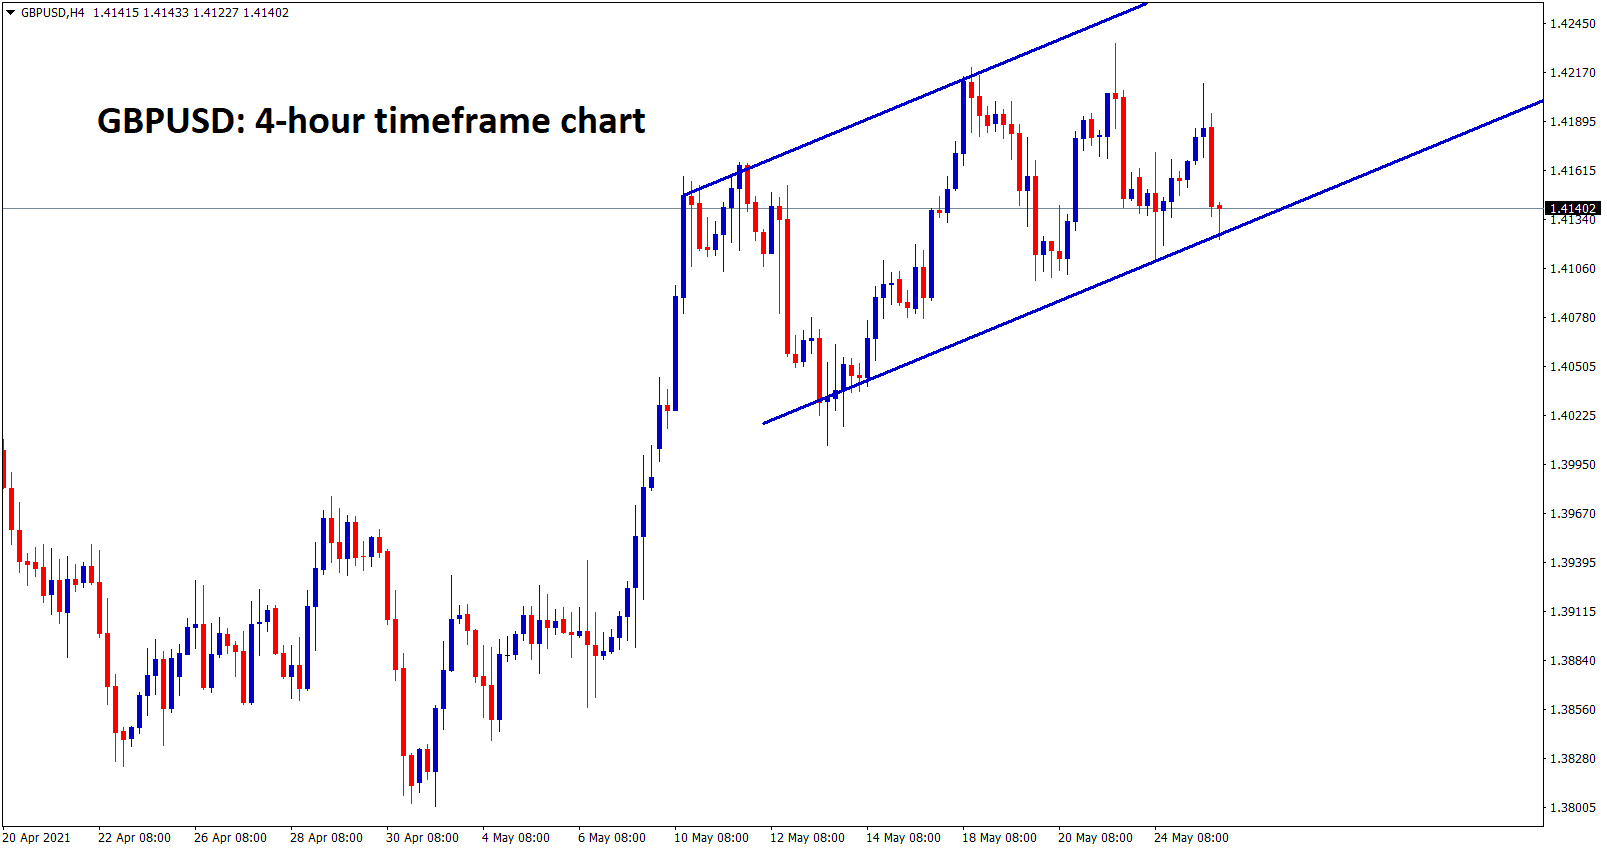 GBPUSD is ranging a uptrend channel line